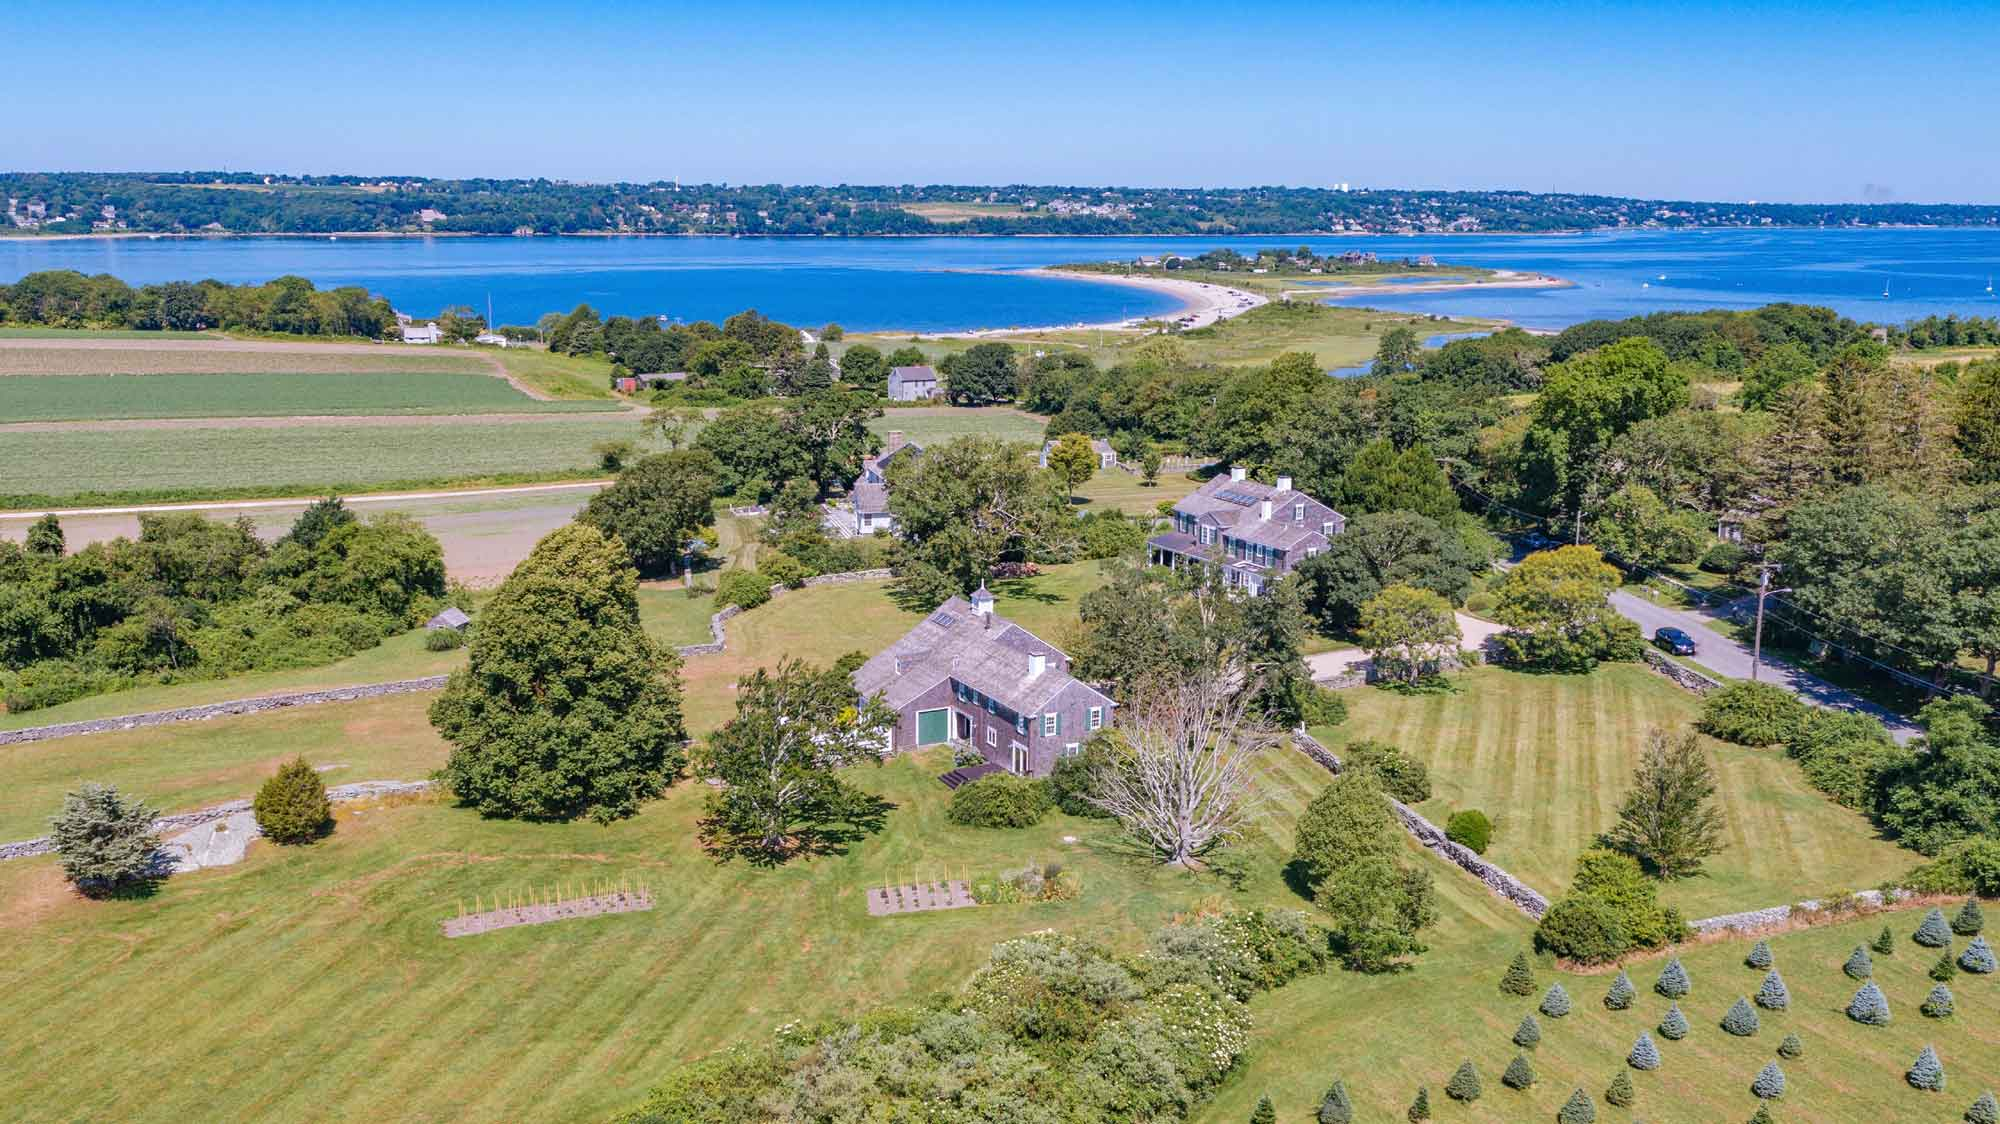 One hour from Boston, Pease Field Farm is a rare combination of farm and ocean living in Tiverton, Rhode Island.